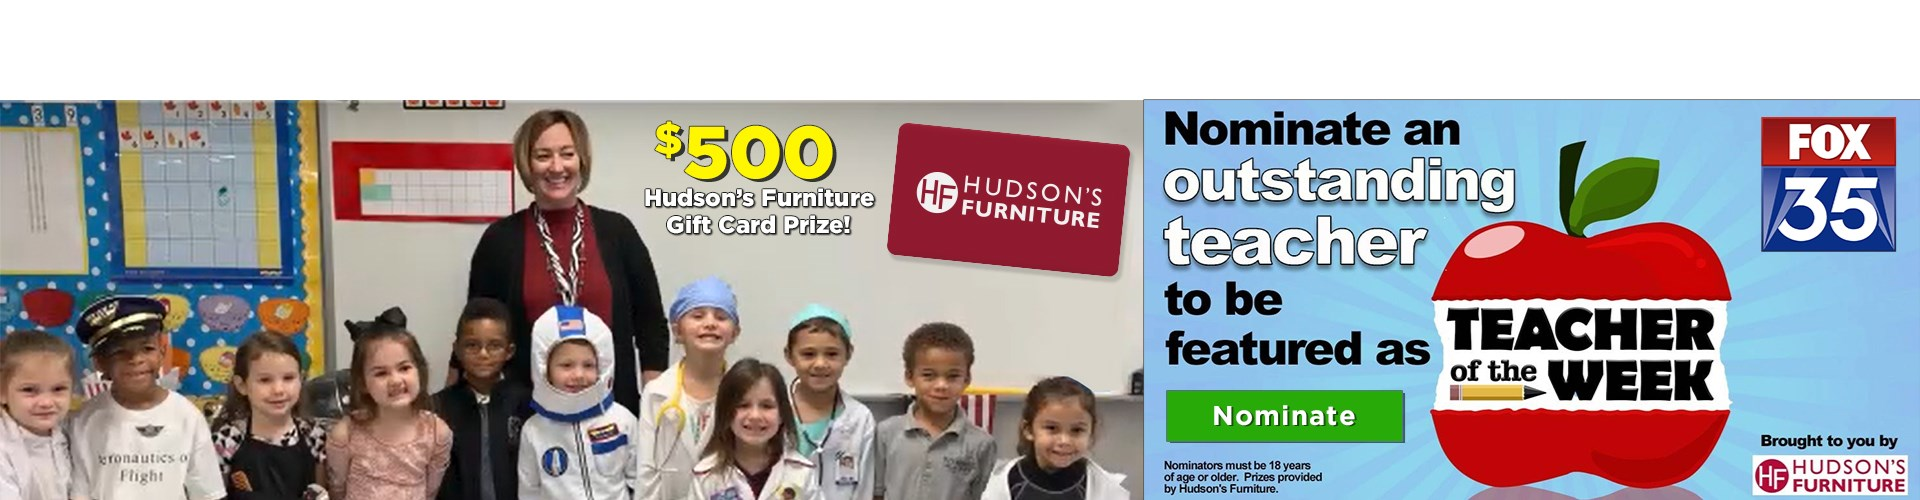 Nominate Your Best Teacher To Get a $500 Dollar Hudson's Gift Card